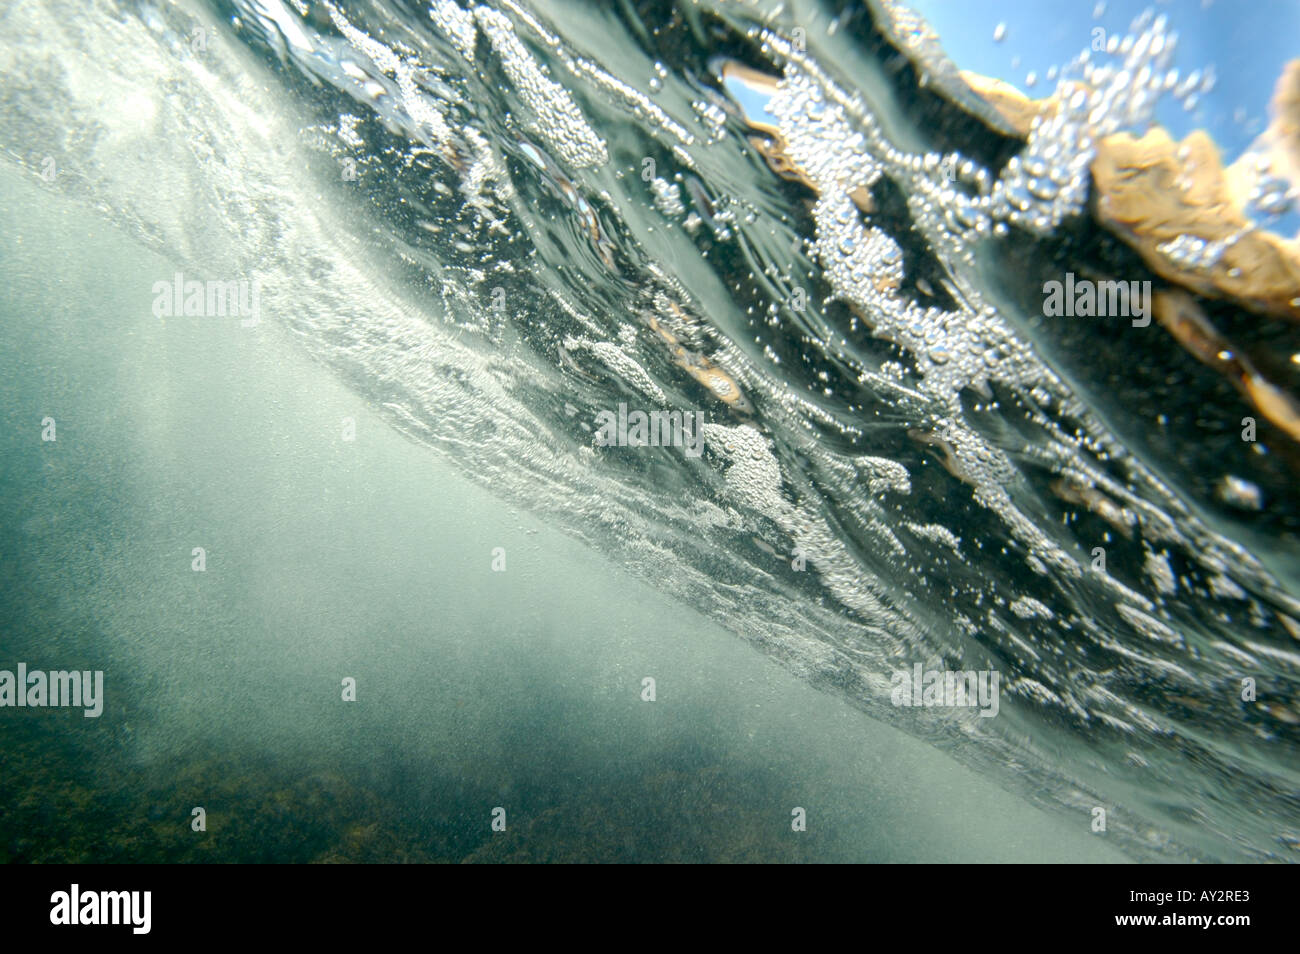 Bubbles under the sea near the surface - Stock Image